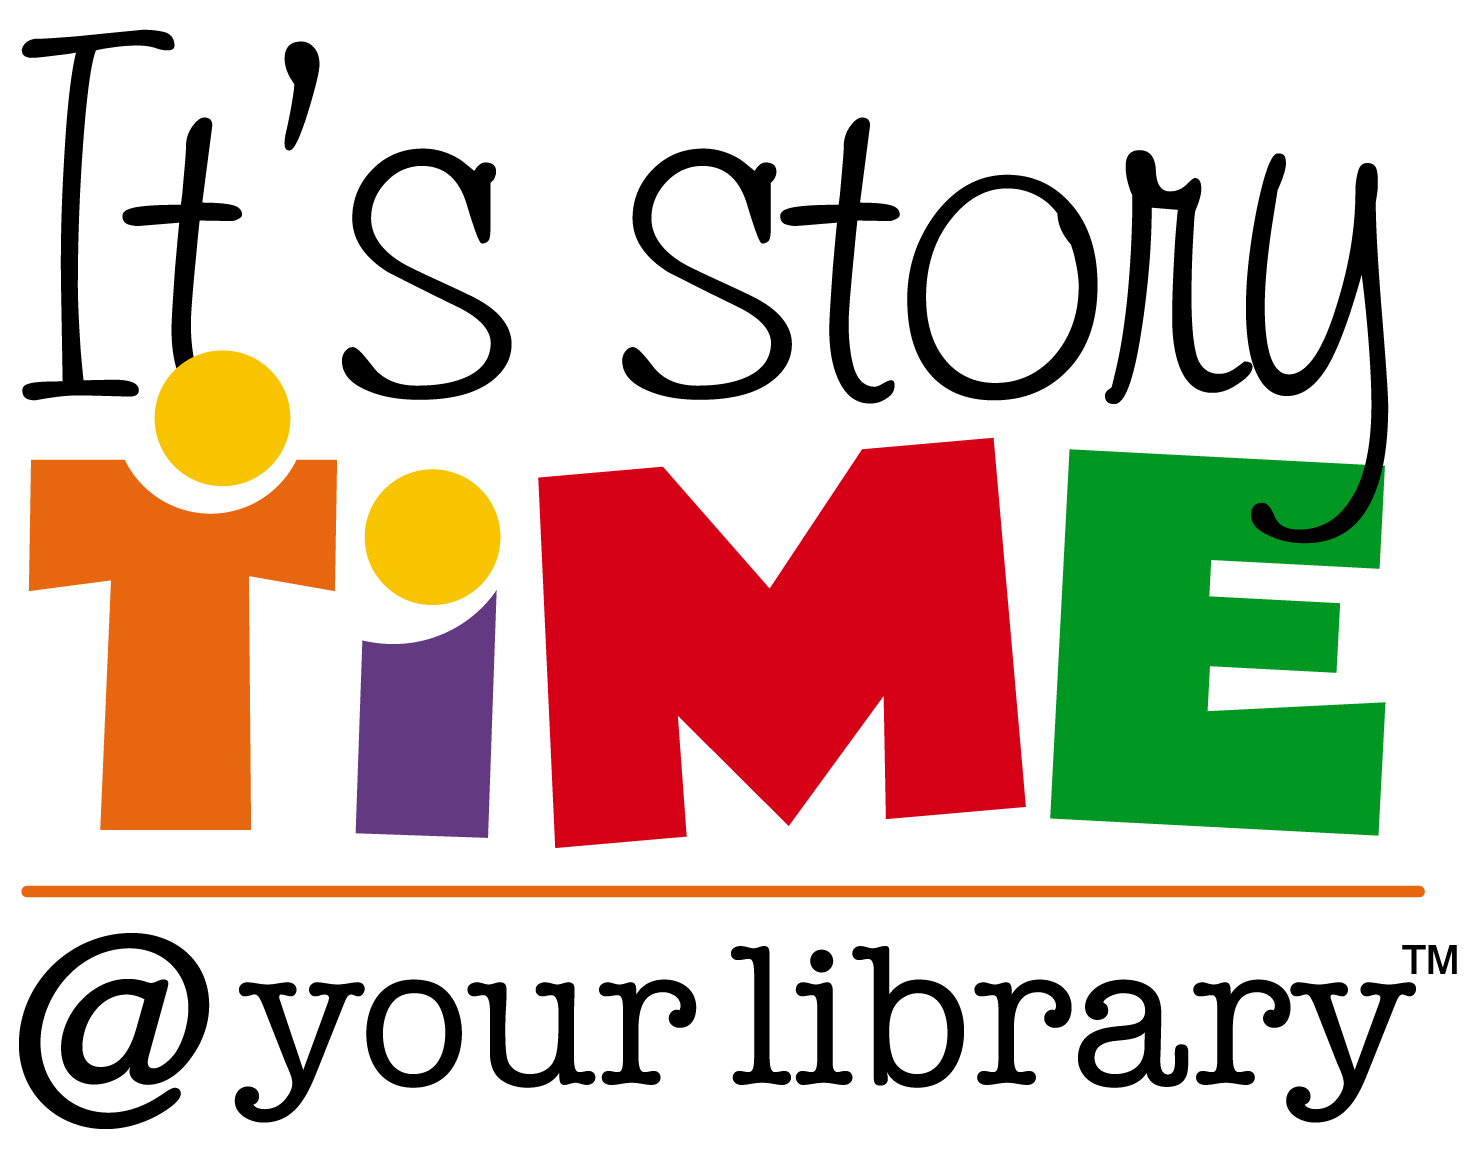 Free preschool cliparts download. Storytime clipart library